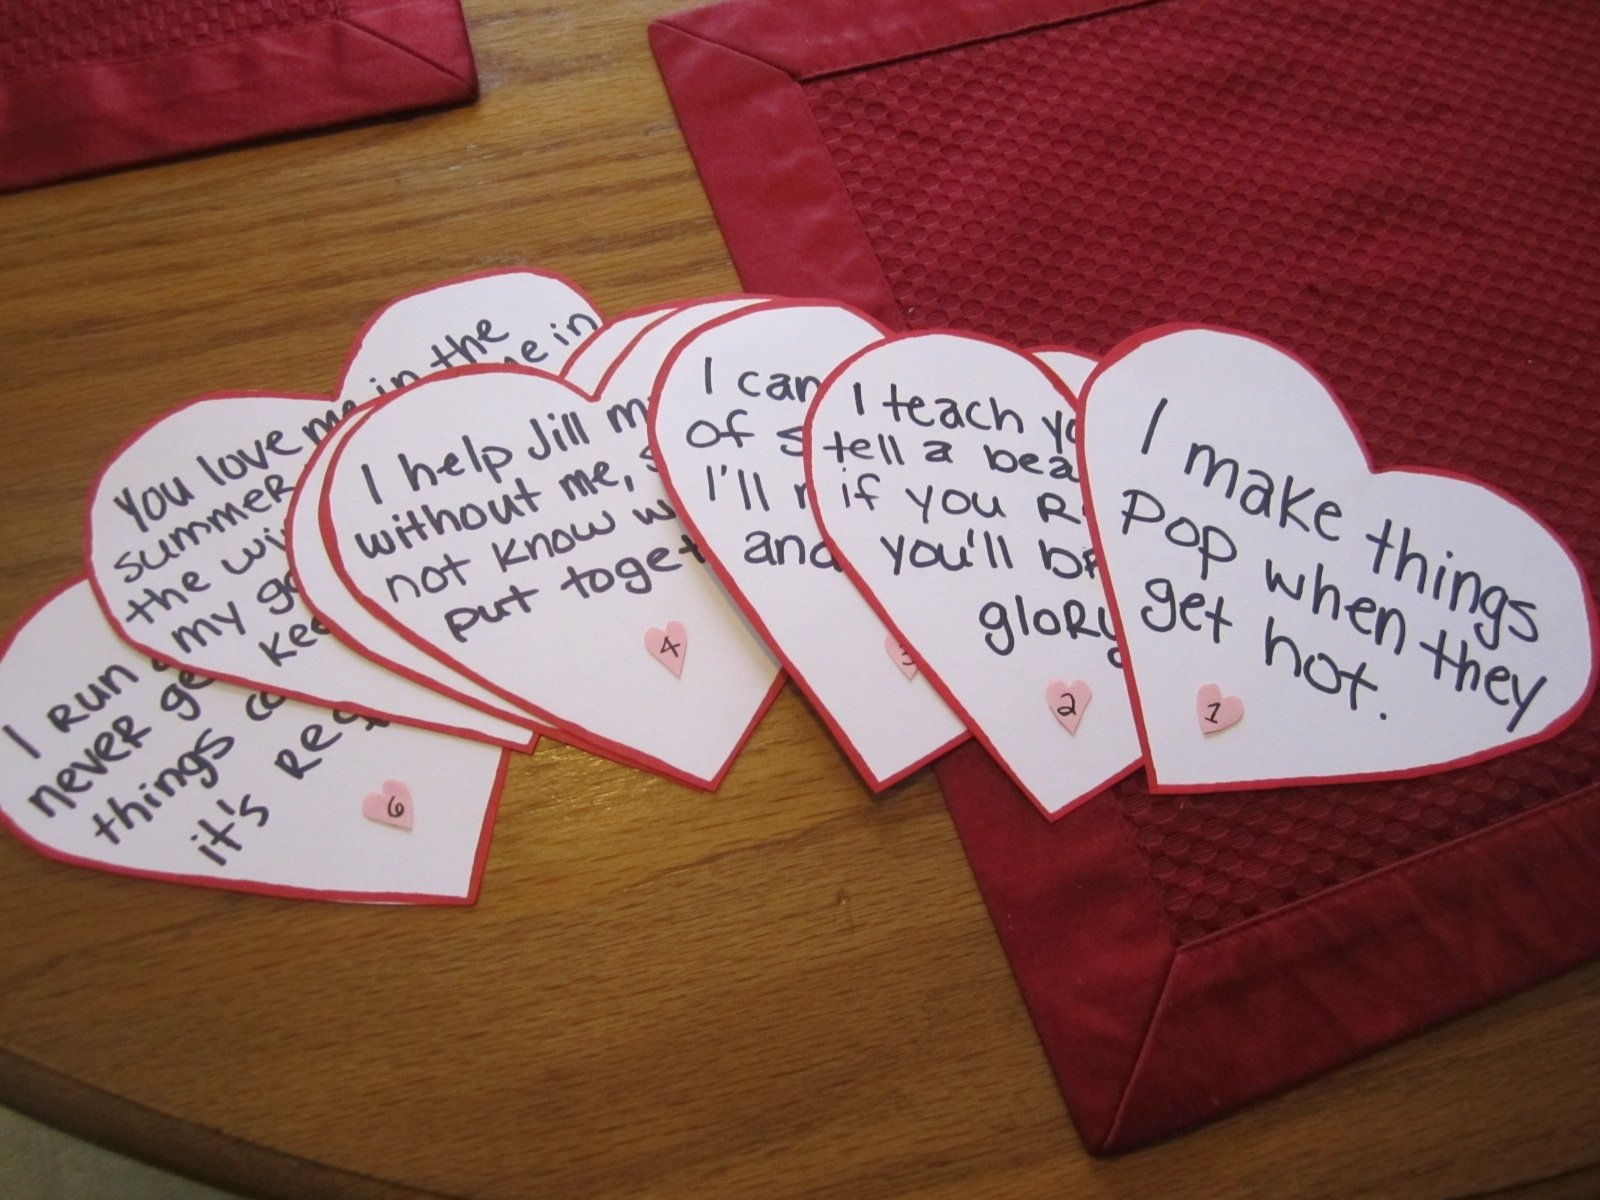 10 Most Recommended Great Valentines Day Ideas For Him valentine day ideas for boyfriend tempting him as wells as day gifts 1 2020